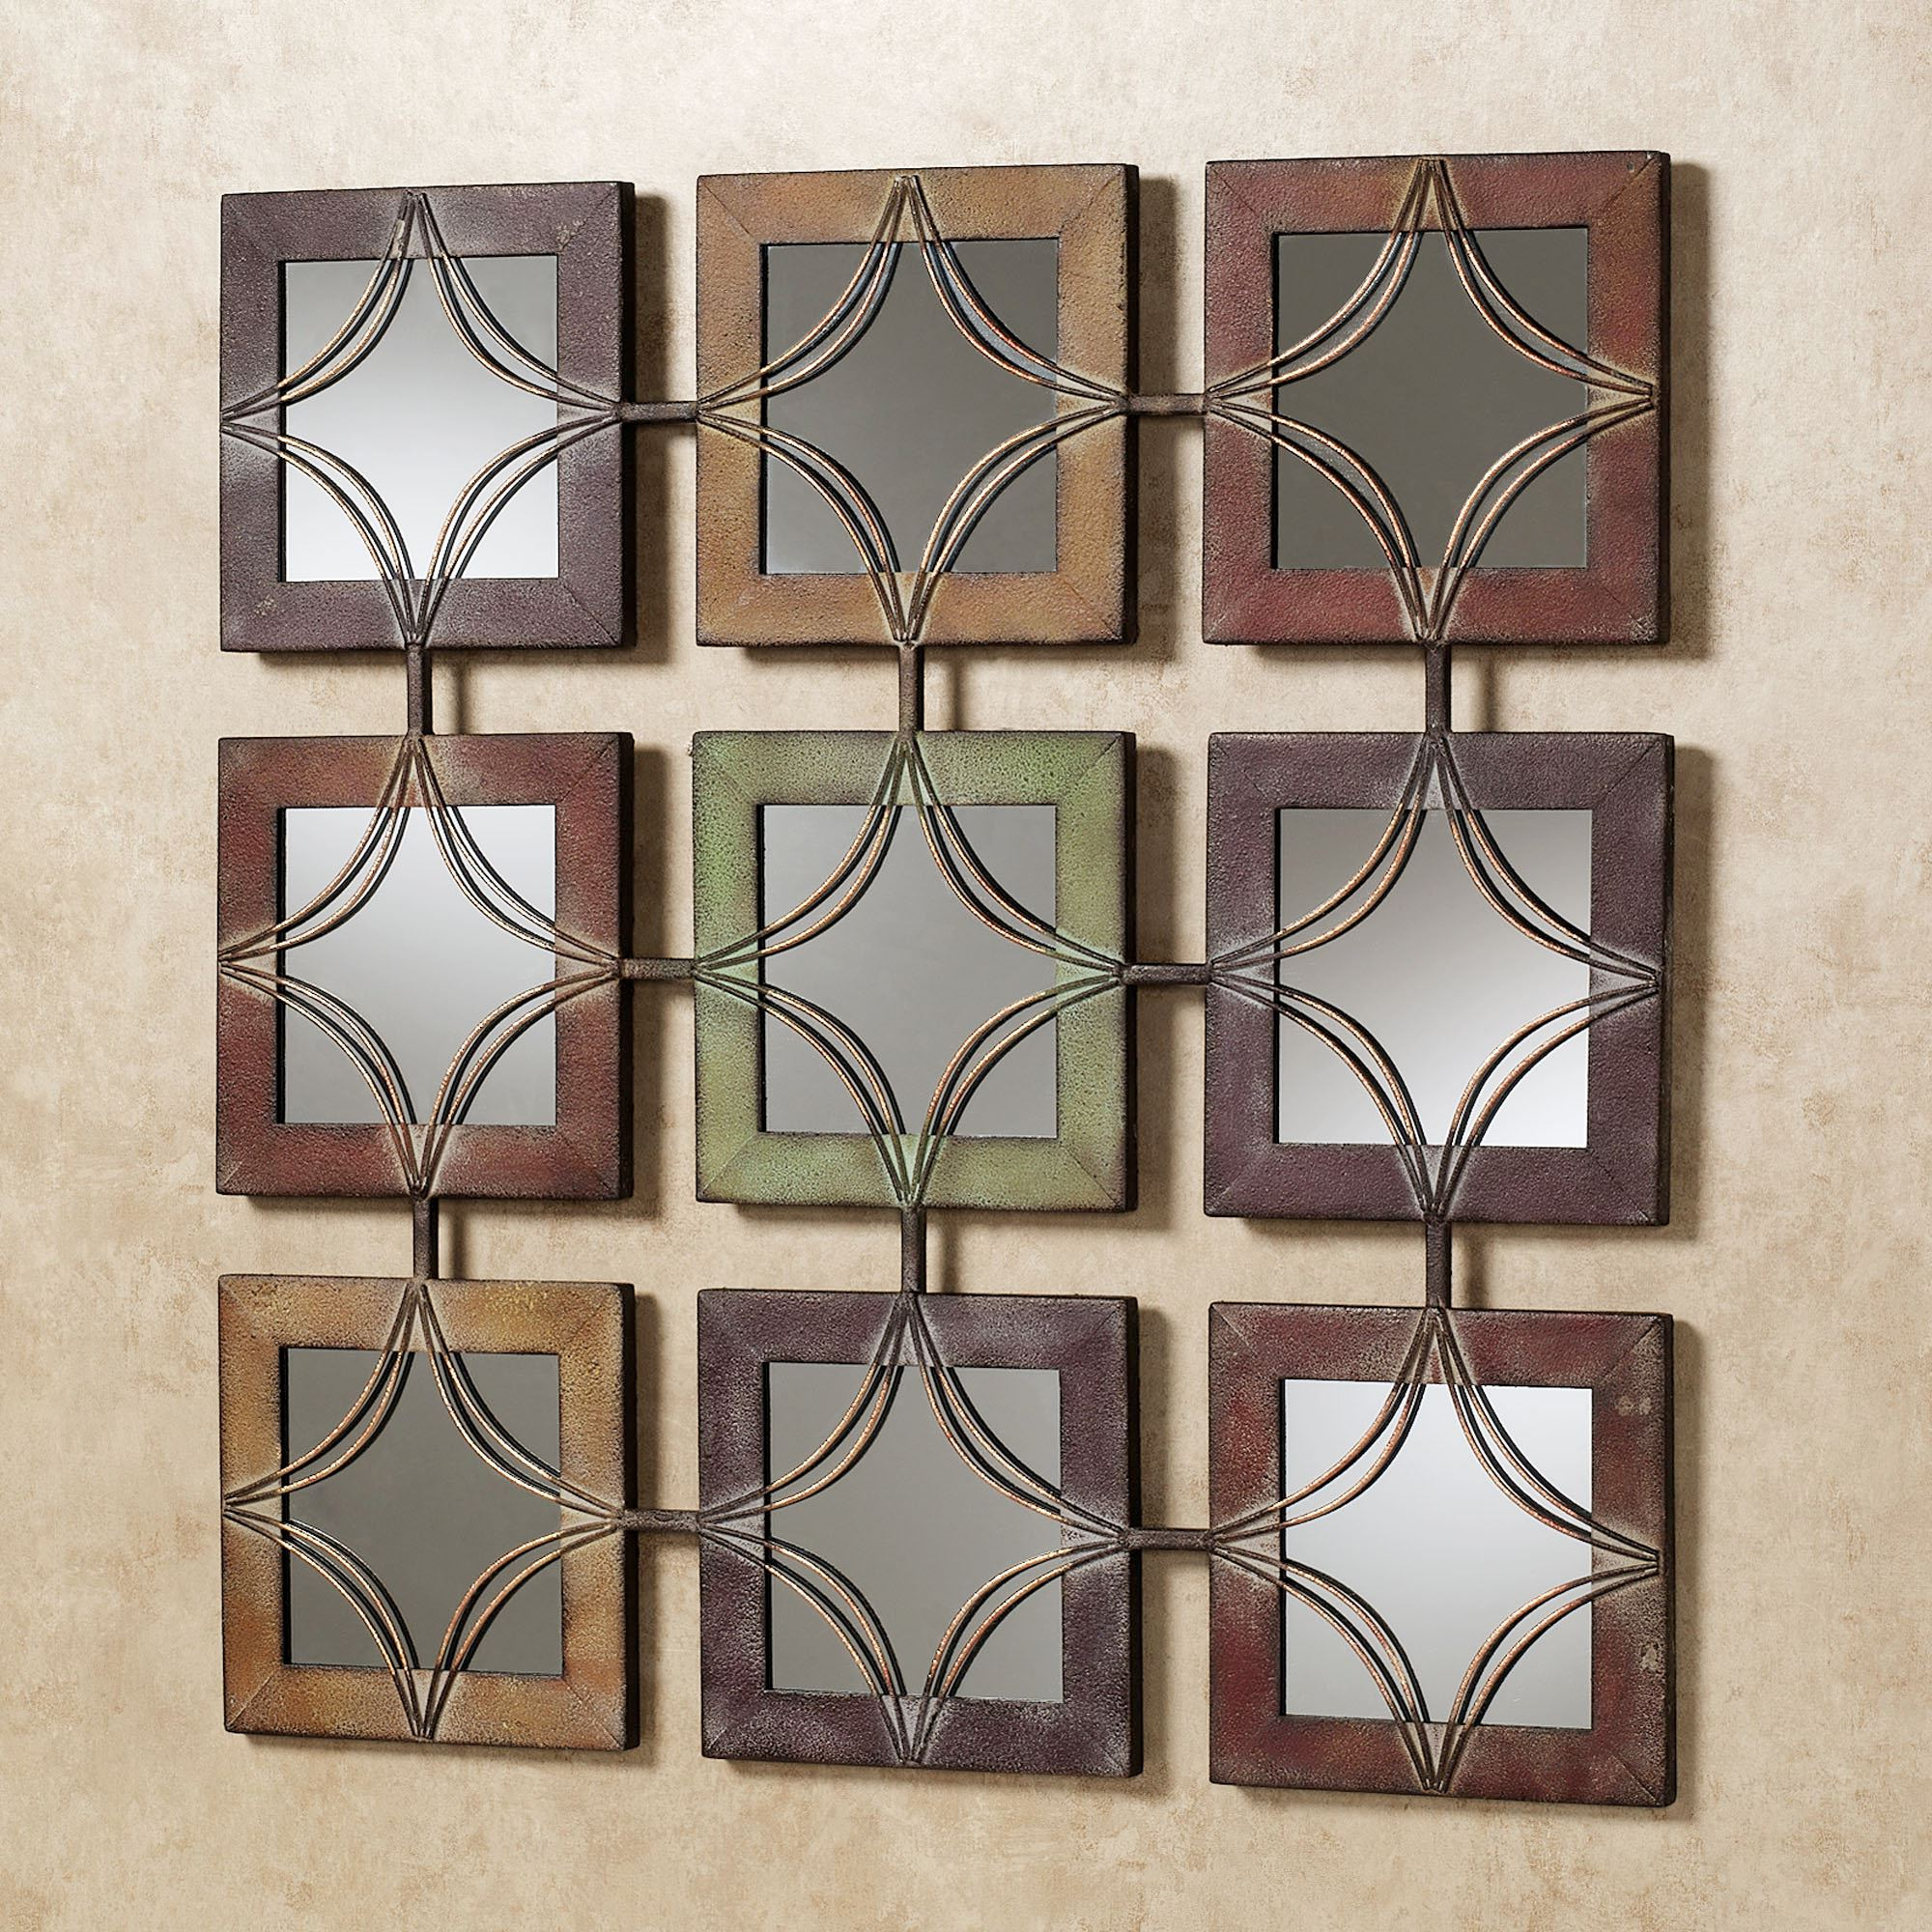 Domini Mirrored Metal Wall Art Throughout Most Up To Date Wall Mirrors With Art (View 6 of 20)